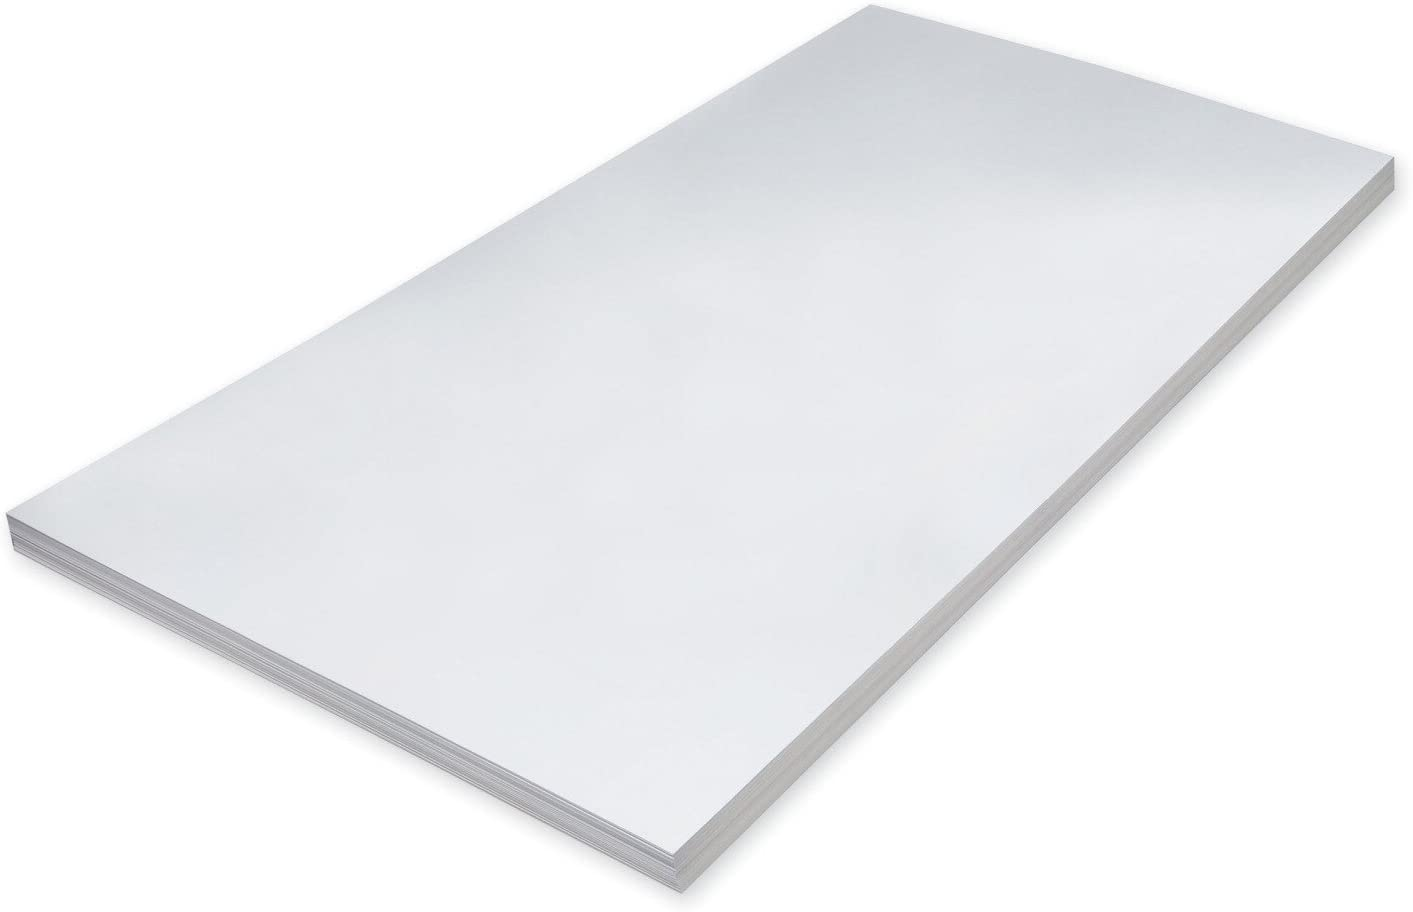 24 x 36 Inches Pack of 100 Pacon Super Heavyweight Tagboard 11.5 Pt White